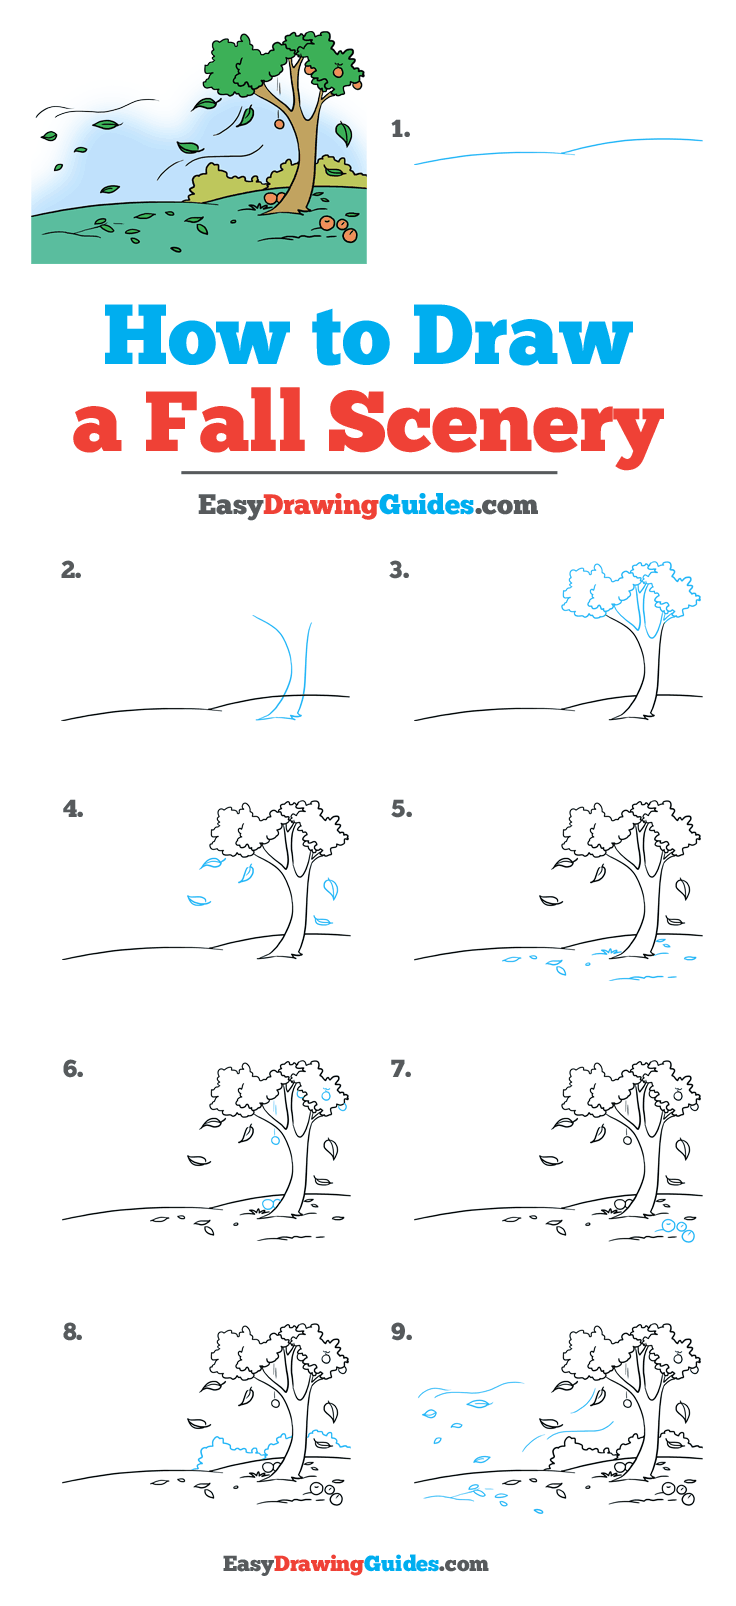 How to Draw Fall Scenery - Really Easy Drawing Tutorial #fallscenery Learn to draw a fall scenery. This step-by-step tutorial makes it easy. Kids and ...#draw #drawing #easy #fall #fallscenery #kids #learn #really #scenery #stepbystep #tutorial